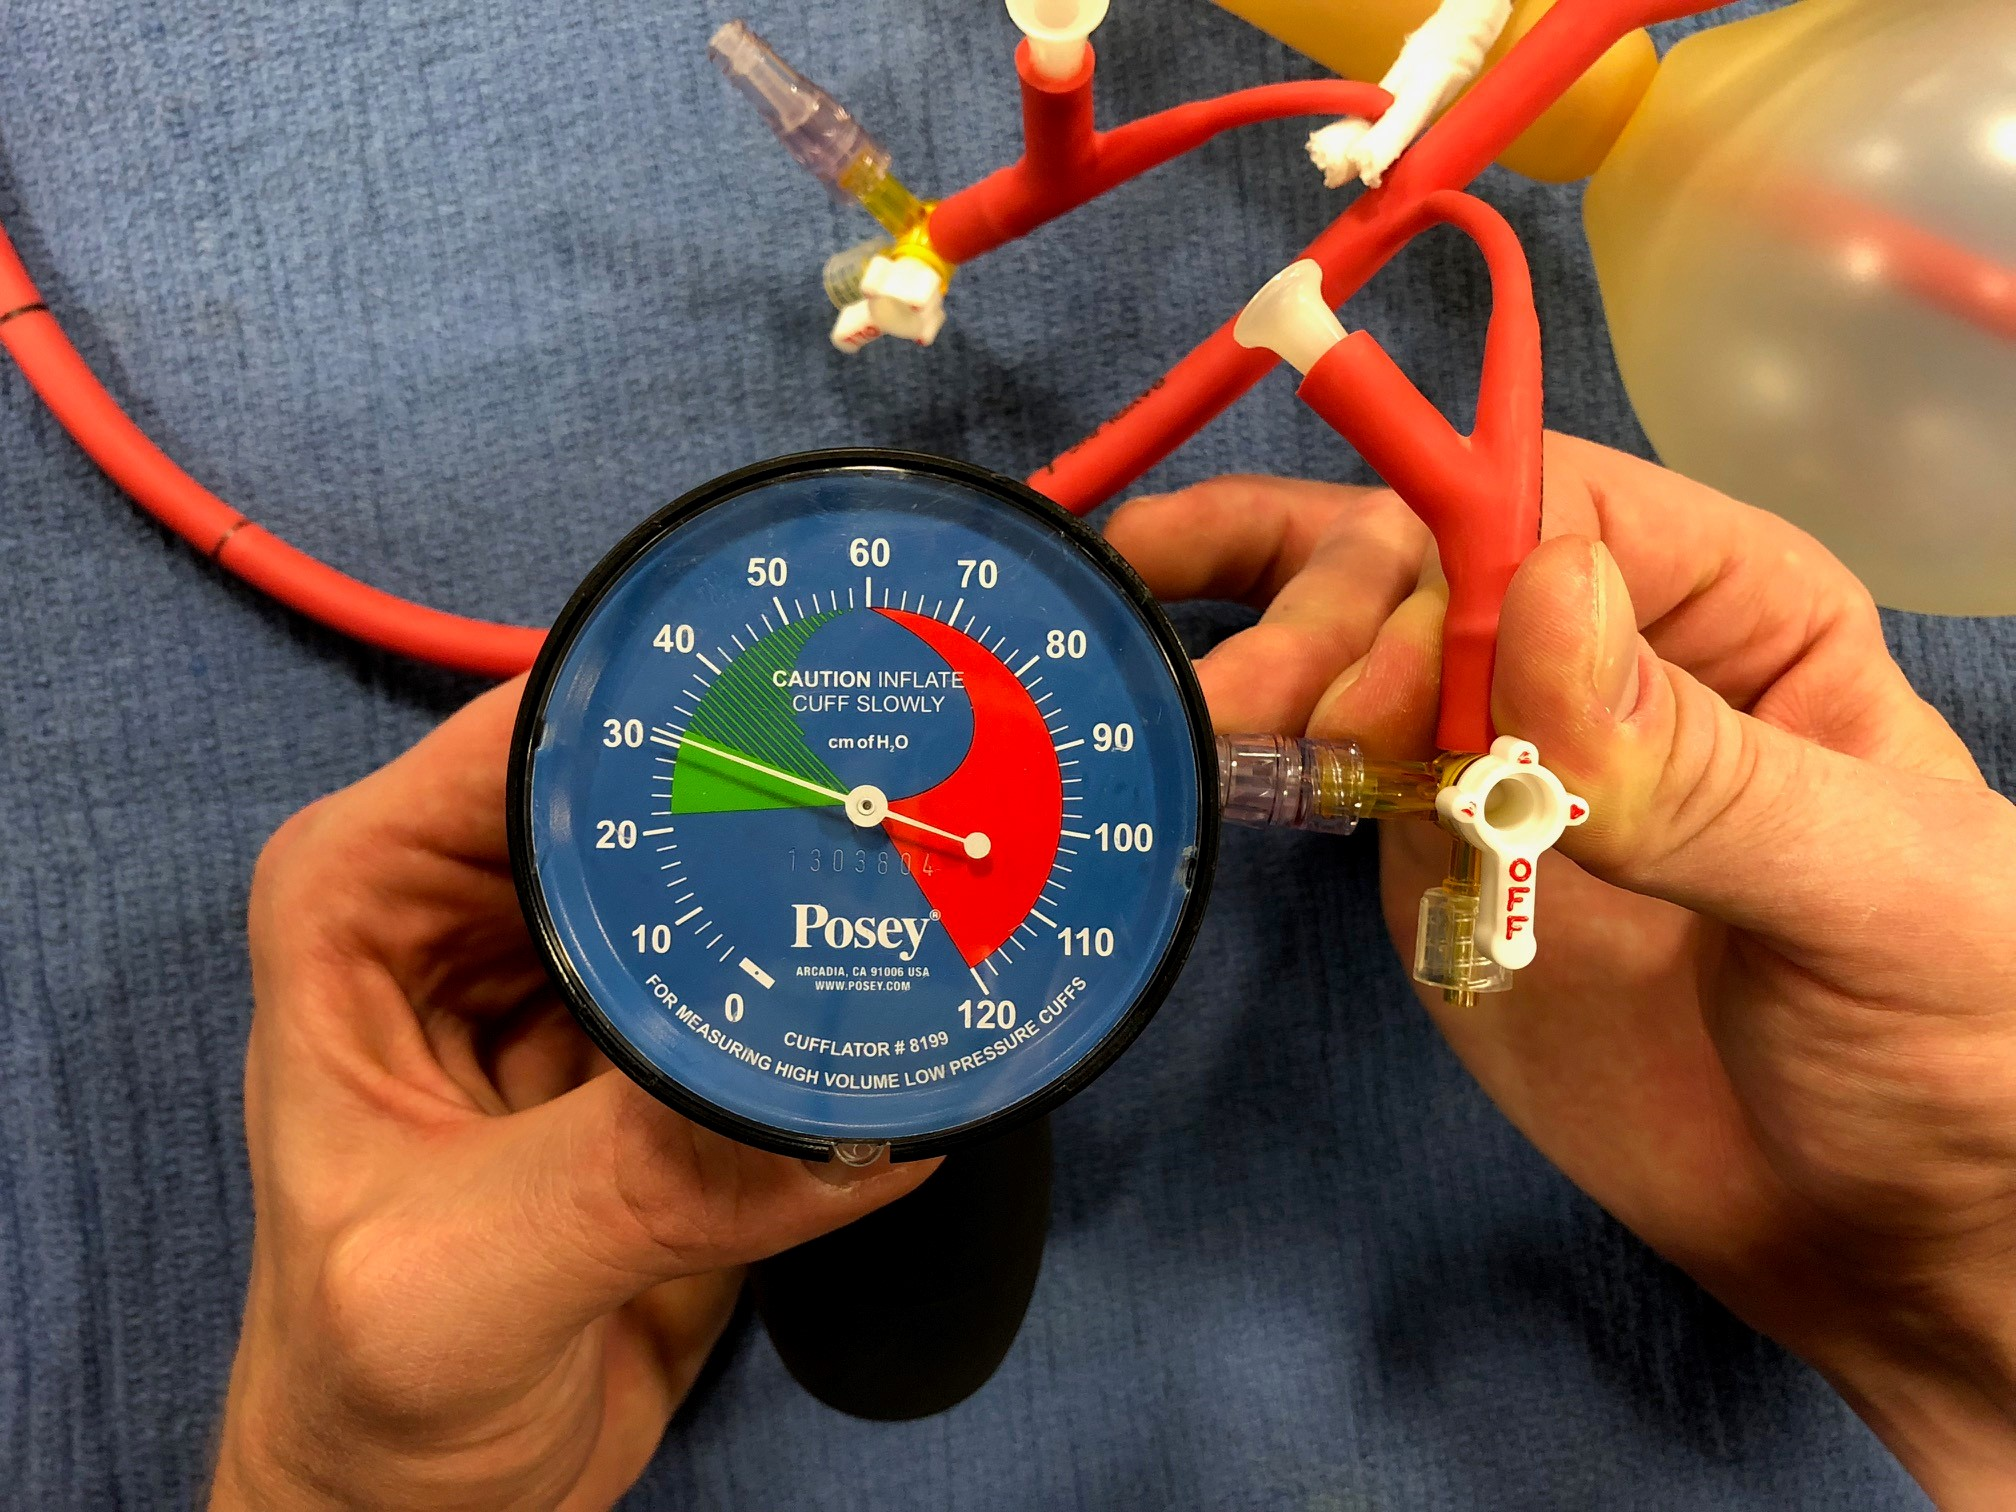 Picture 7: Using Cufflator inflate the esophageal balloon to 30 mmHg